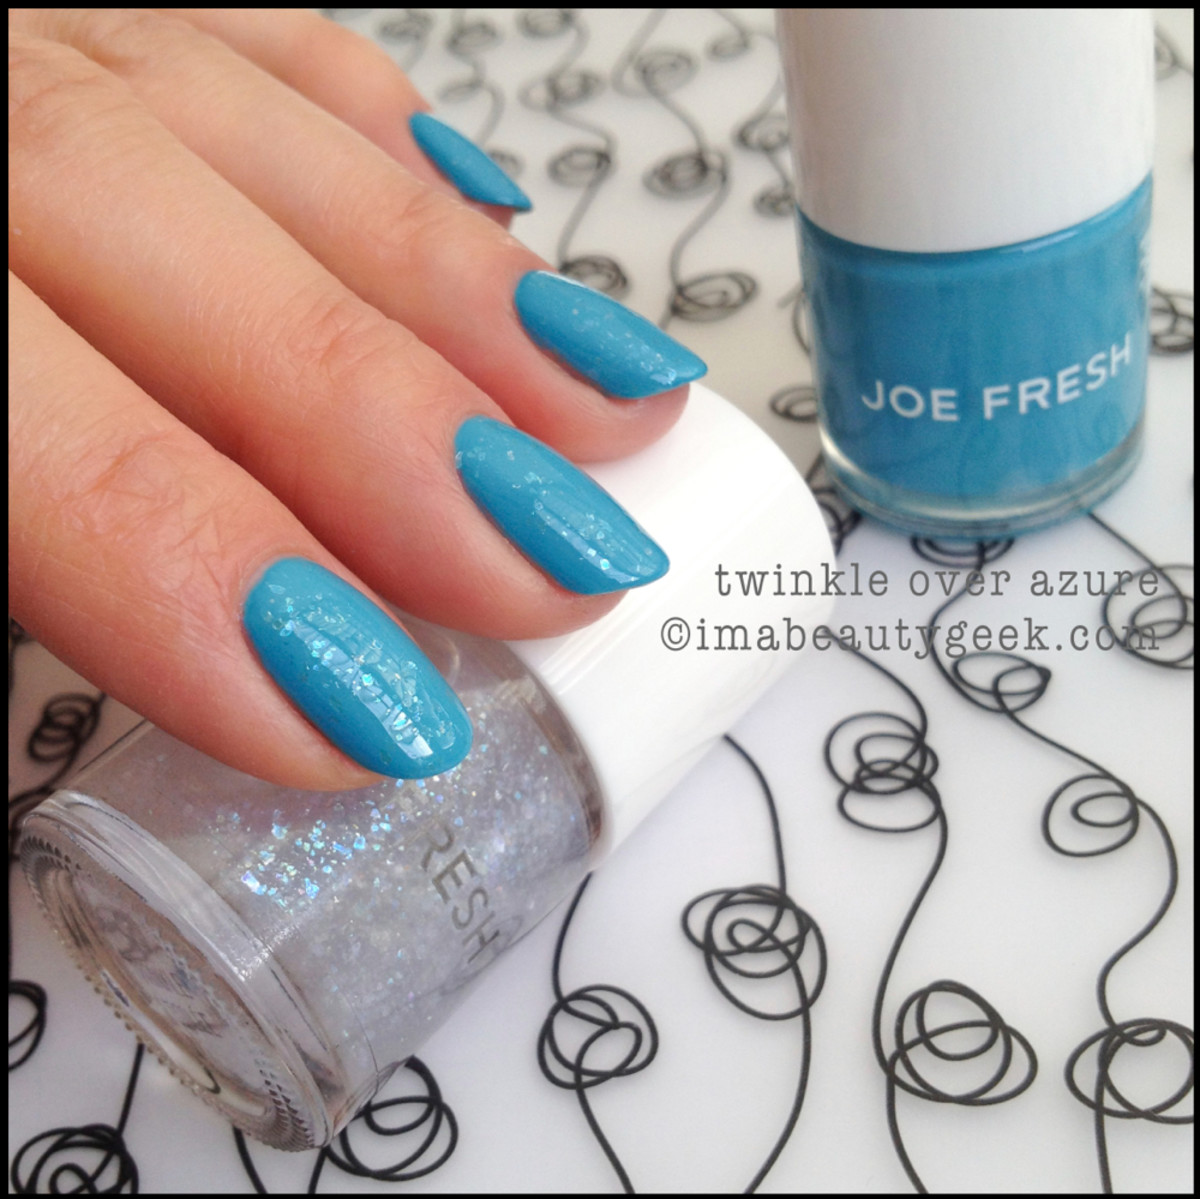 Joe Fresh Polish Twinke over Azure